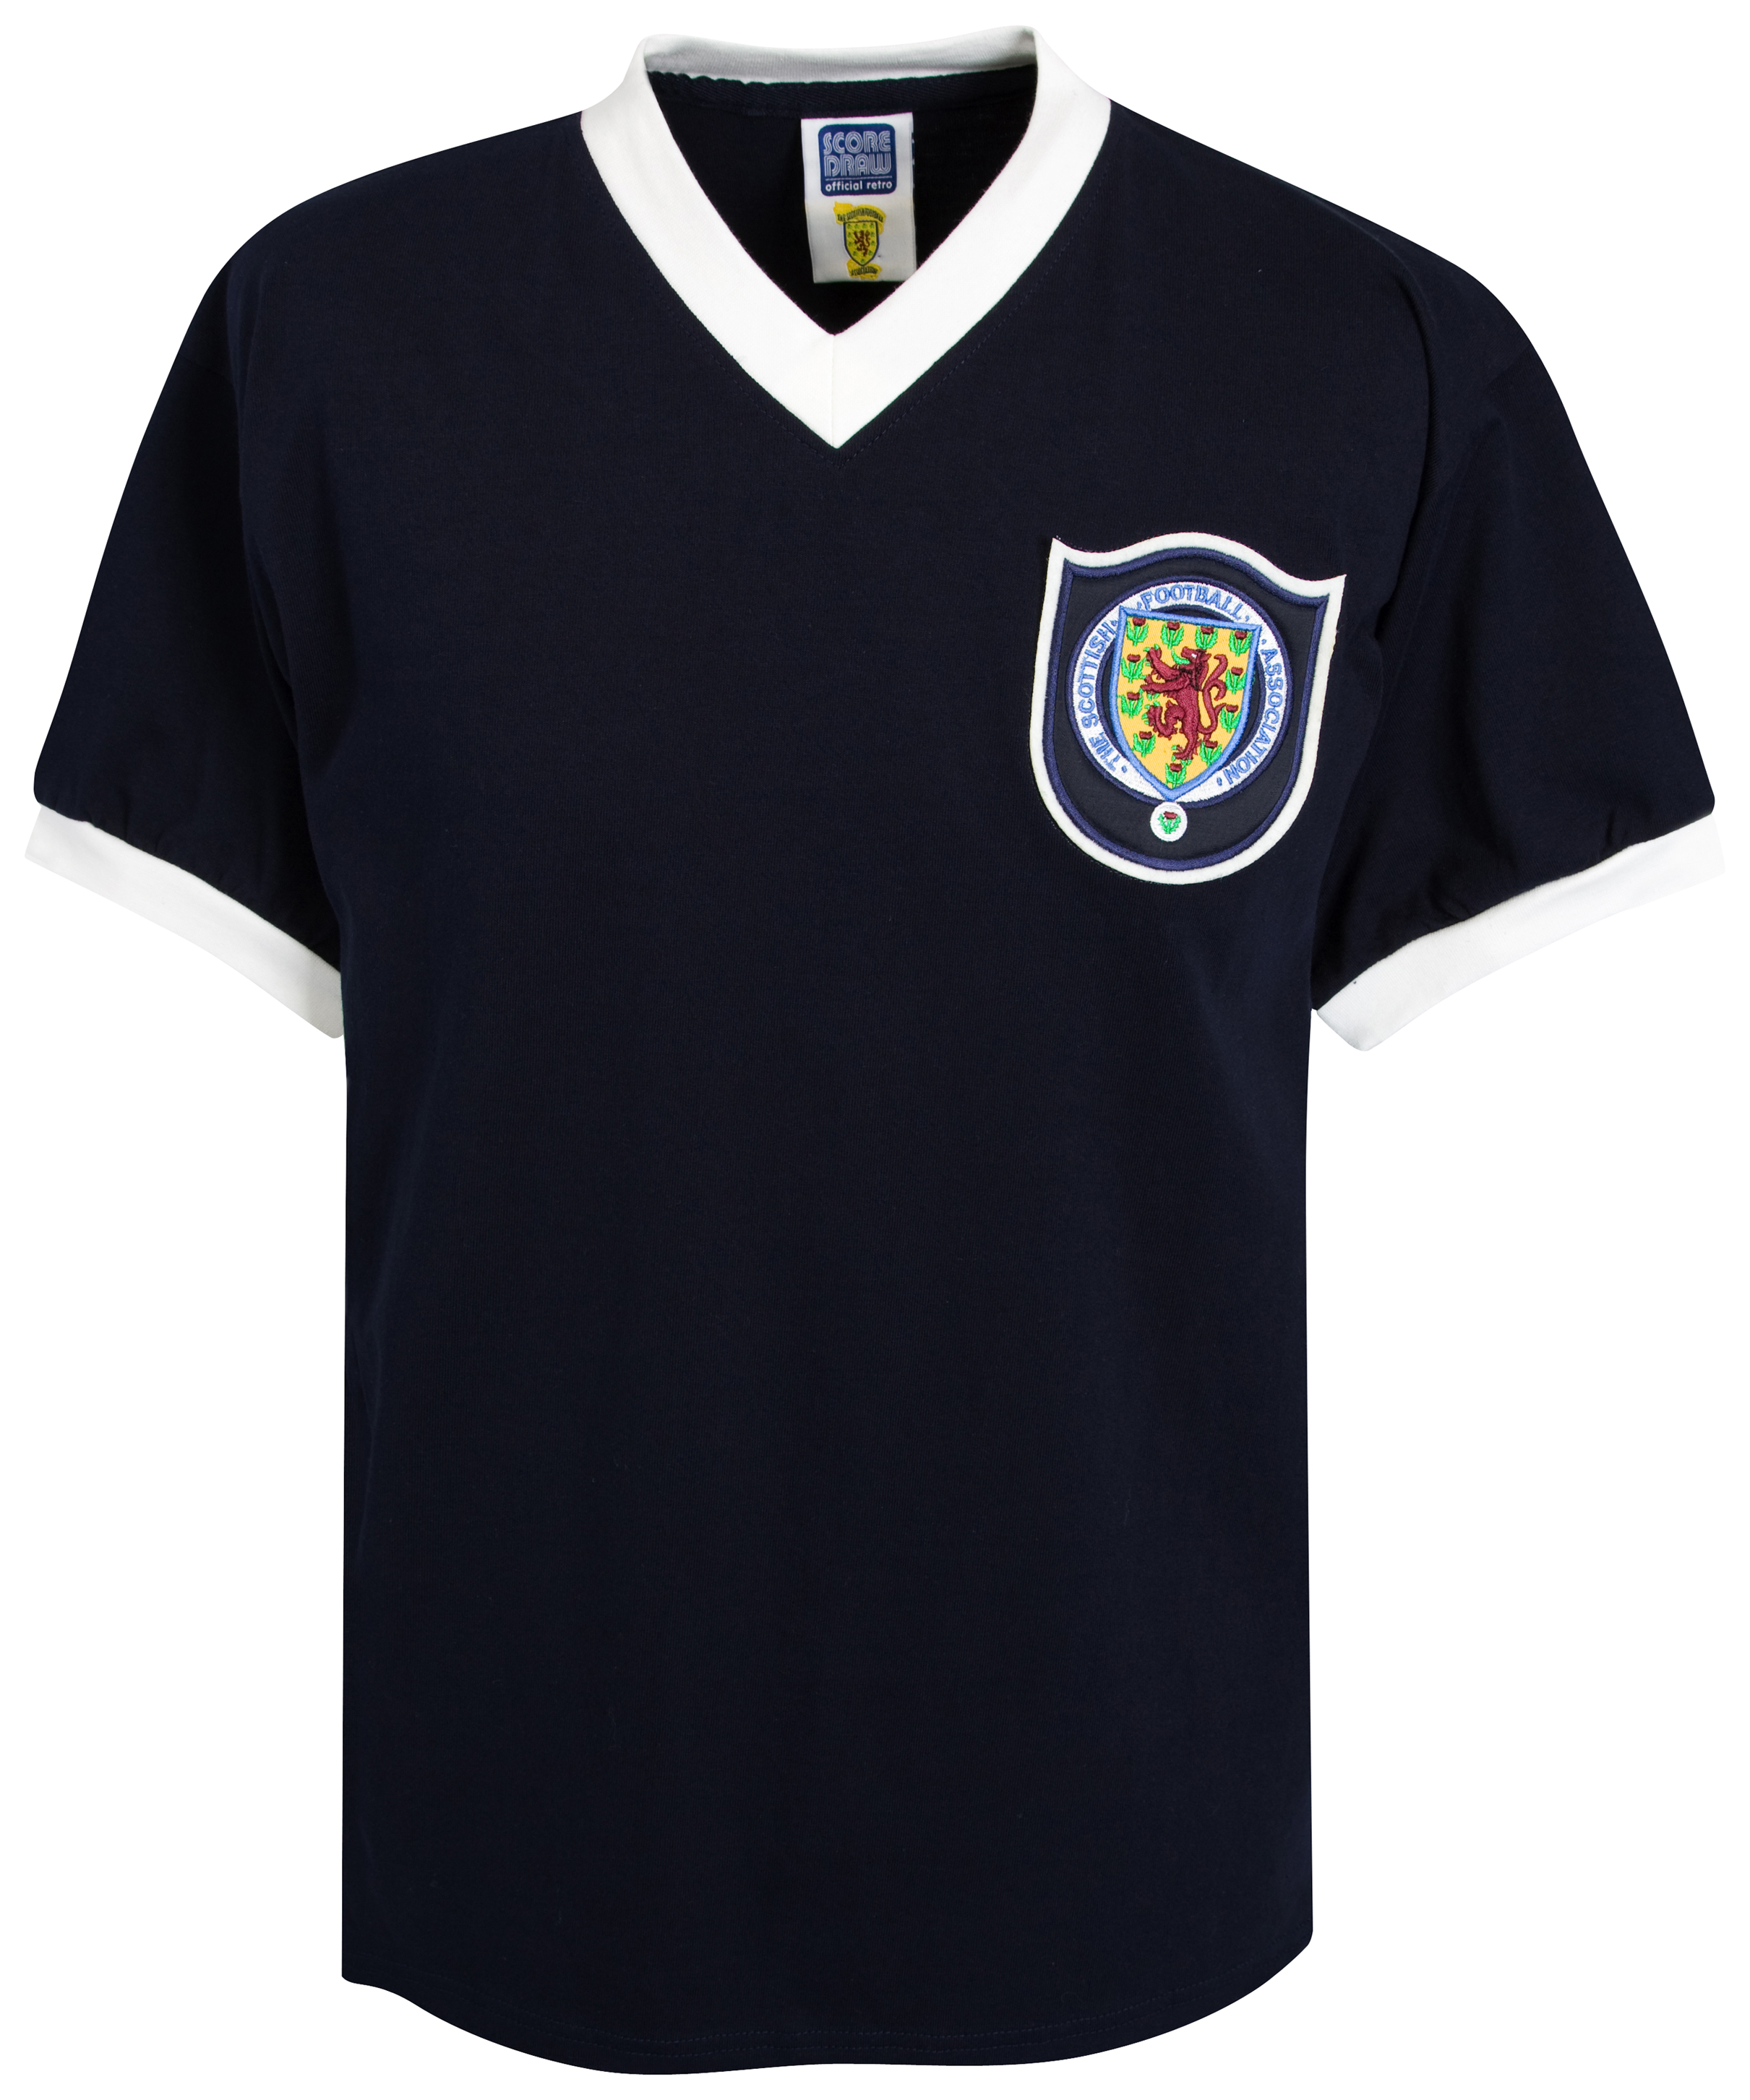 Scotland 1962 Shirt